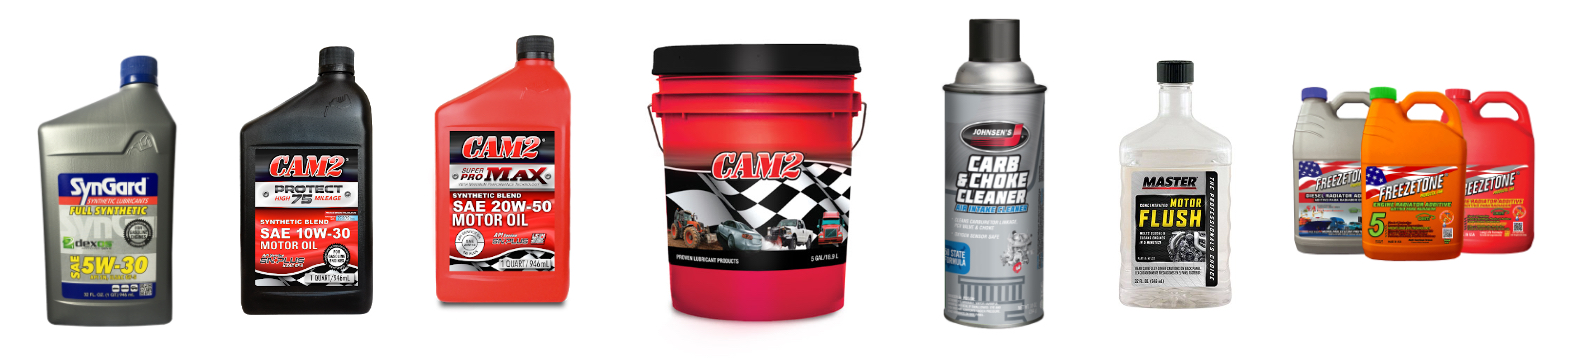 group of automotive lubricants, additives, oils, fluids available in belize